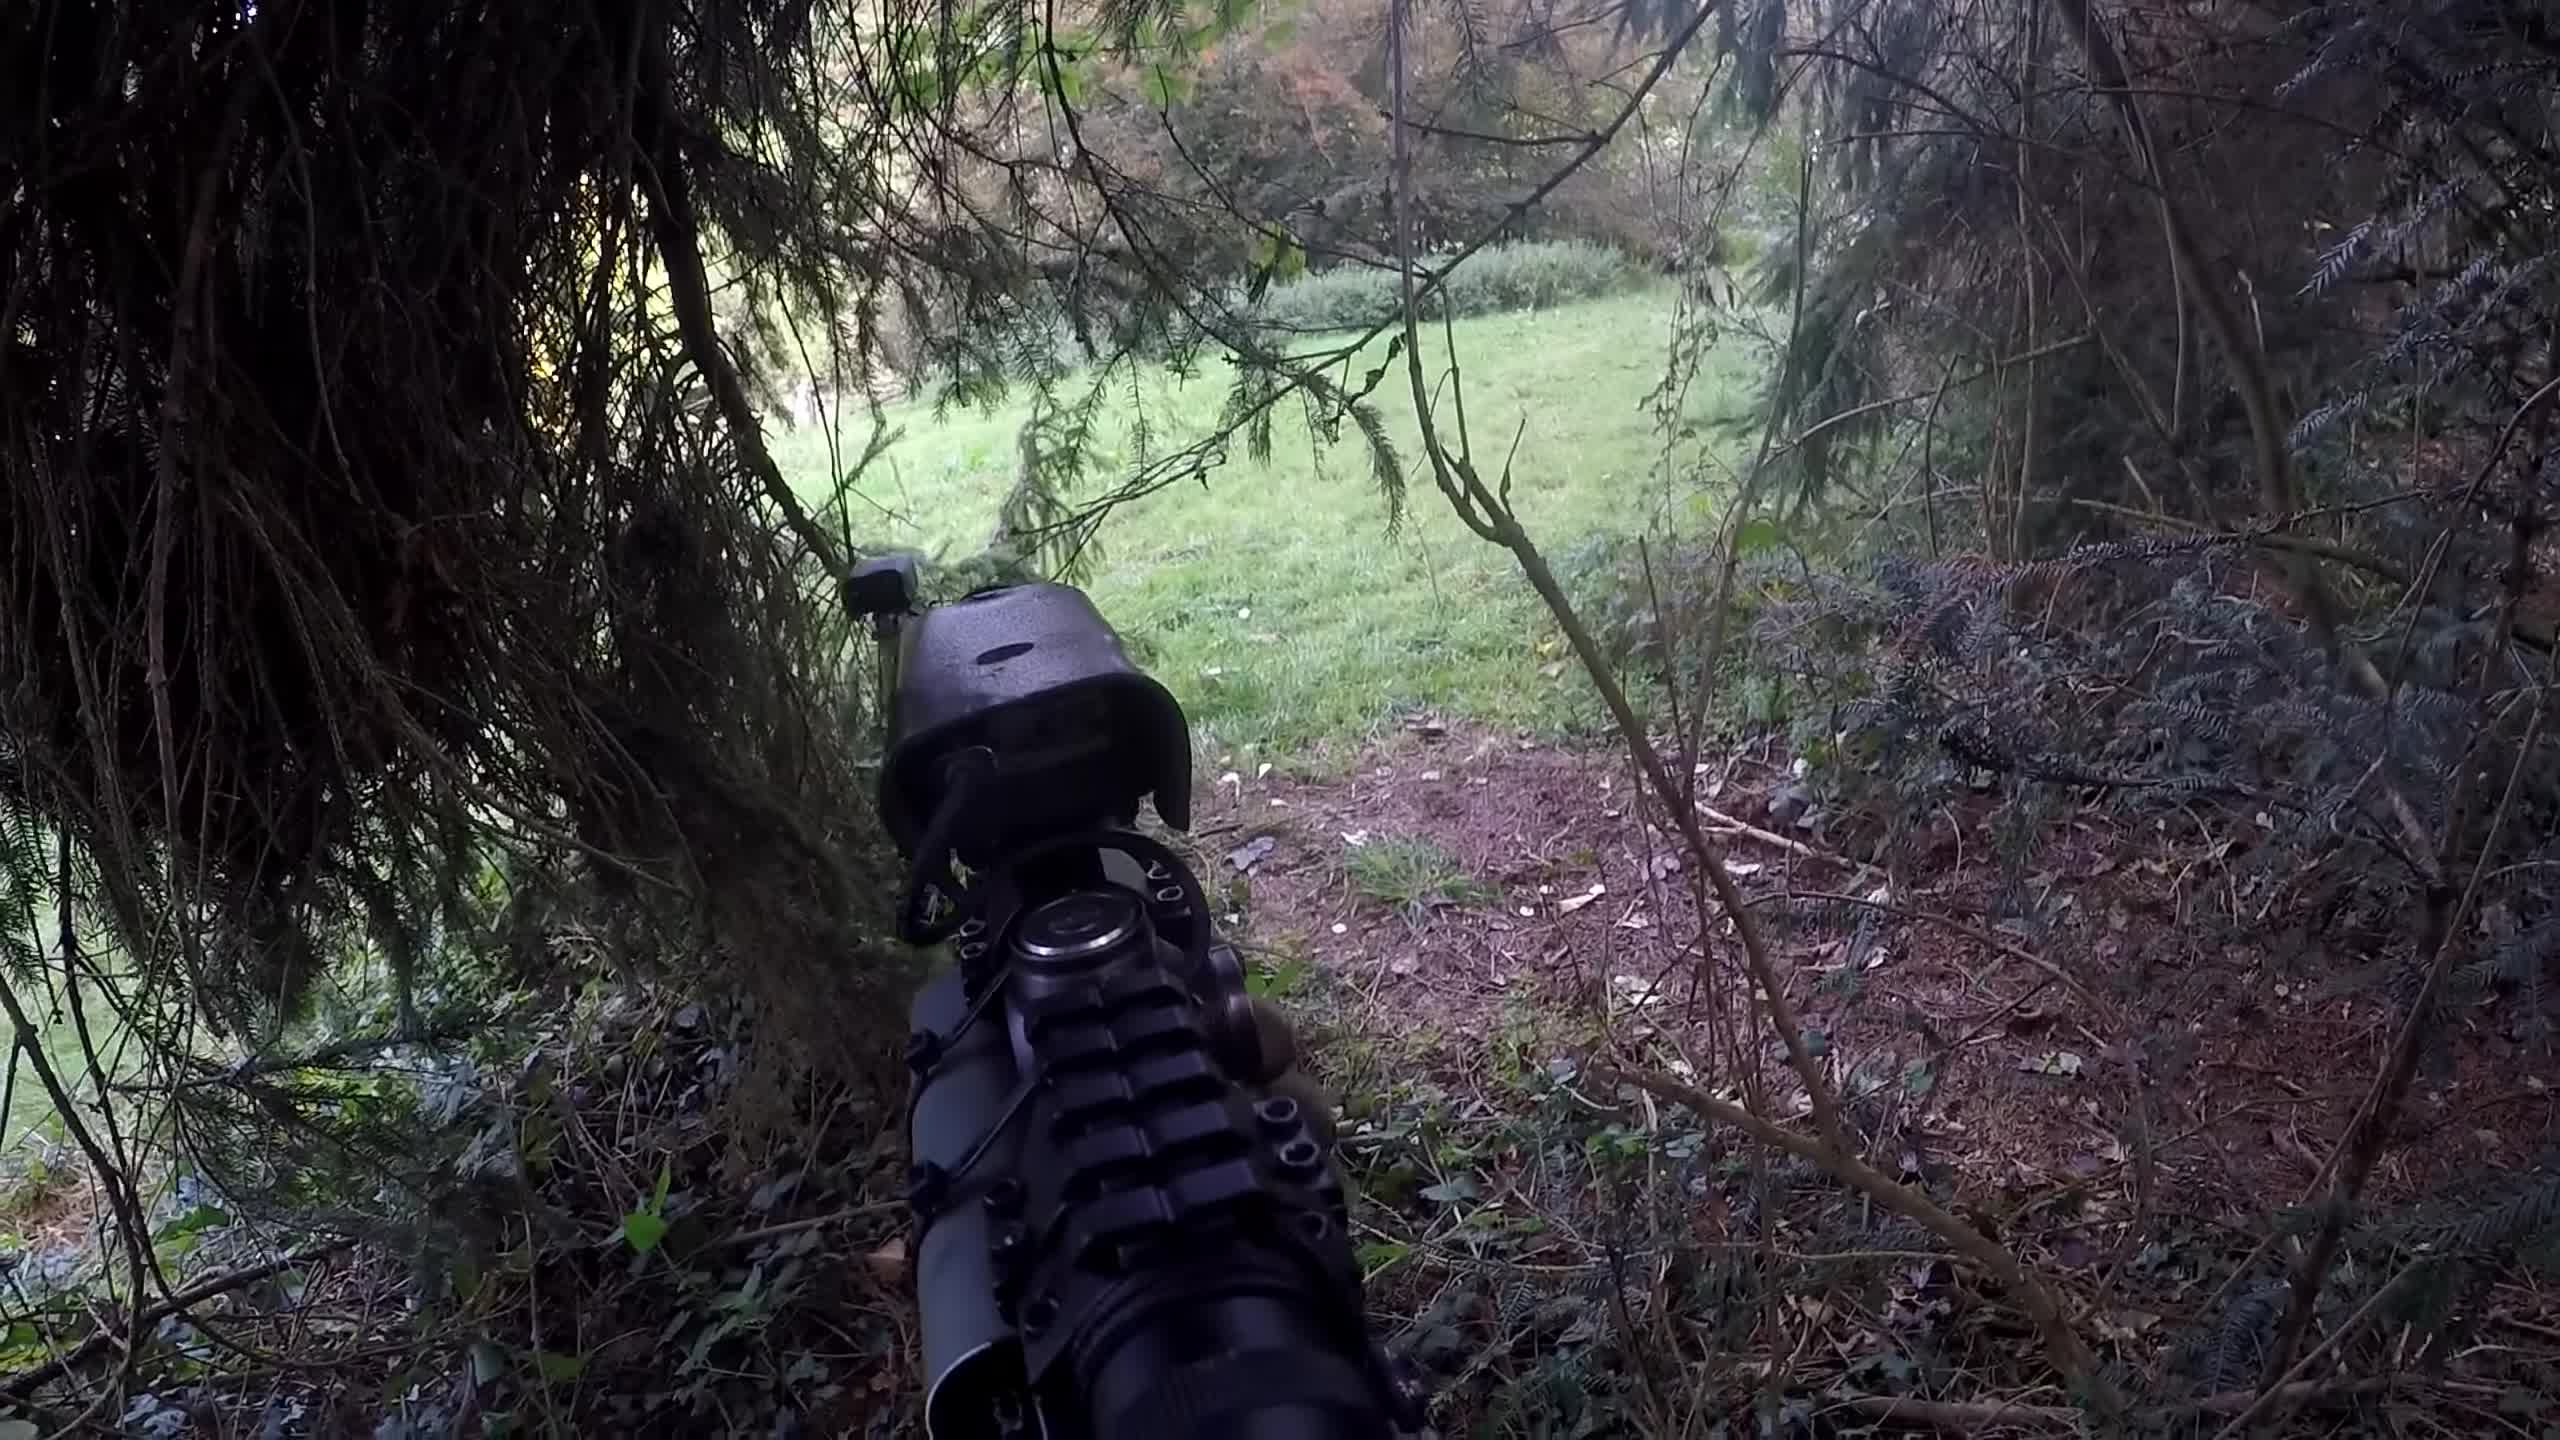 airsoft, airsoft war, cheater, gameplay, scopecam, sniper, tree, airsoft snipin GIFs